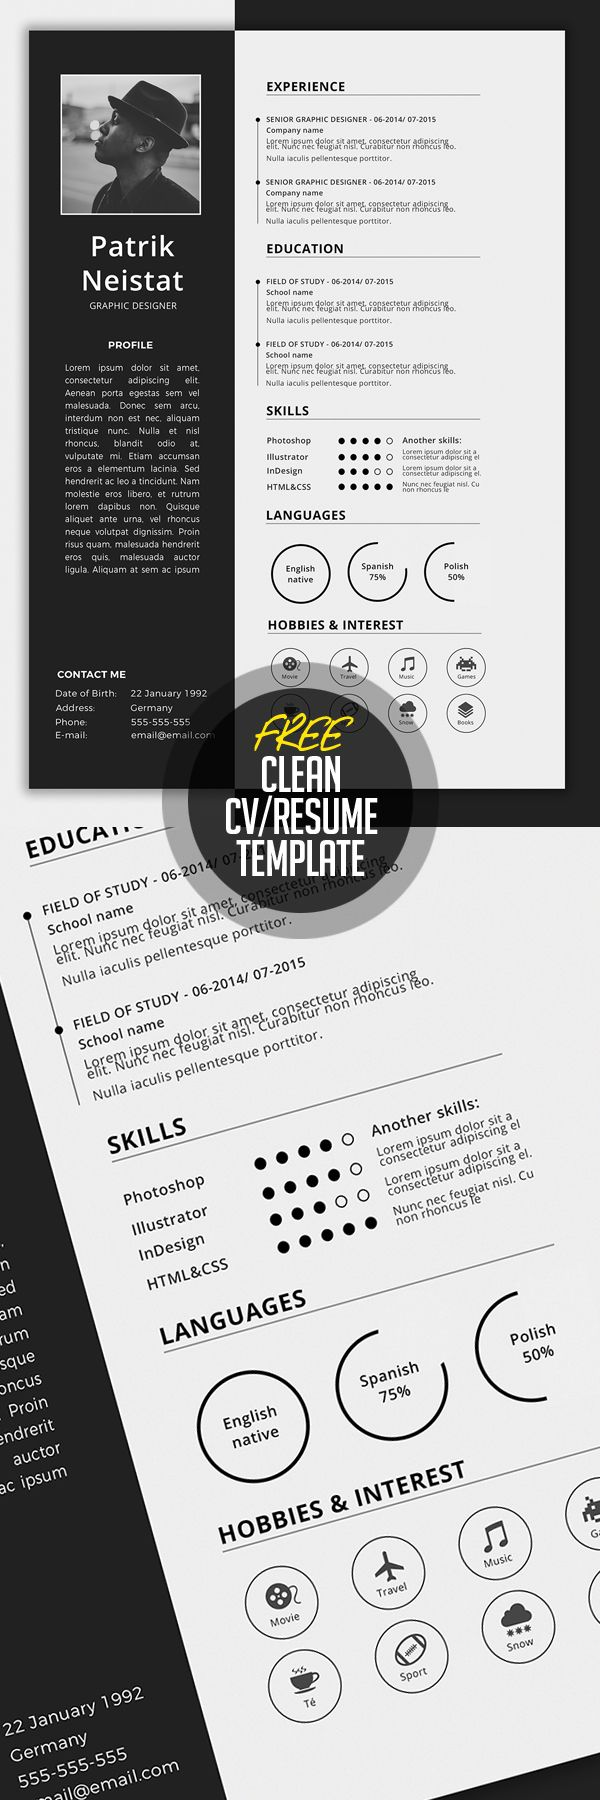 best ideas about cv template cv design cv ideas professional resume templates designed a simple minimal and creative style to help any professional to make a lasting impression when applying